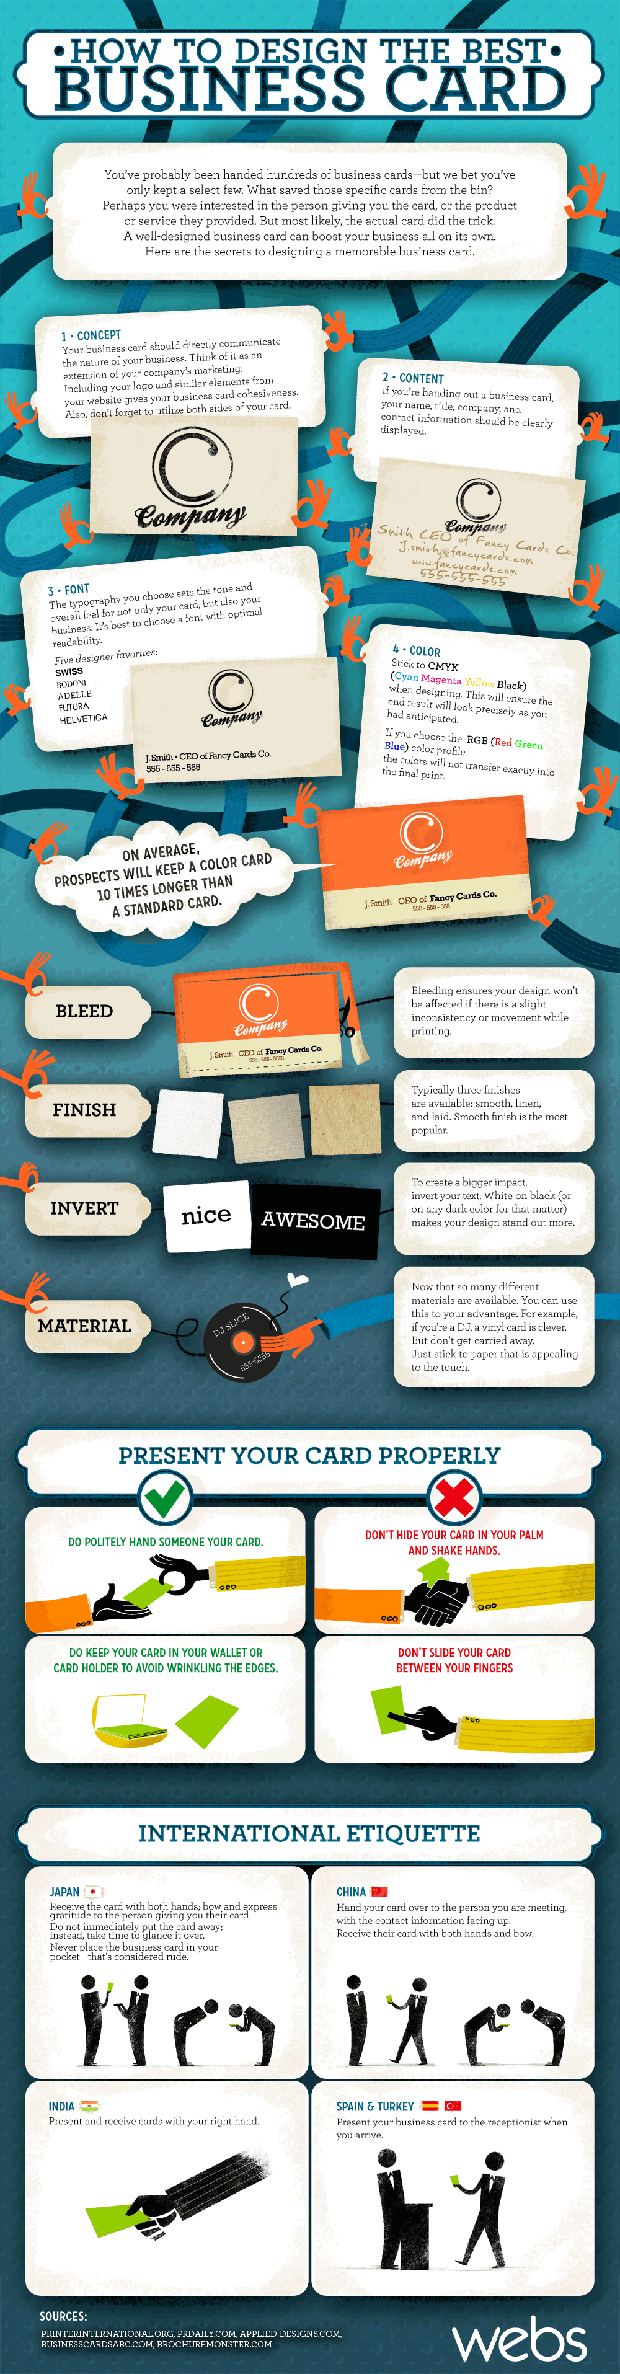 how to design the best business card infographic How to Design The Best Business Card [infographic]